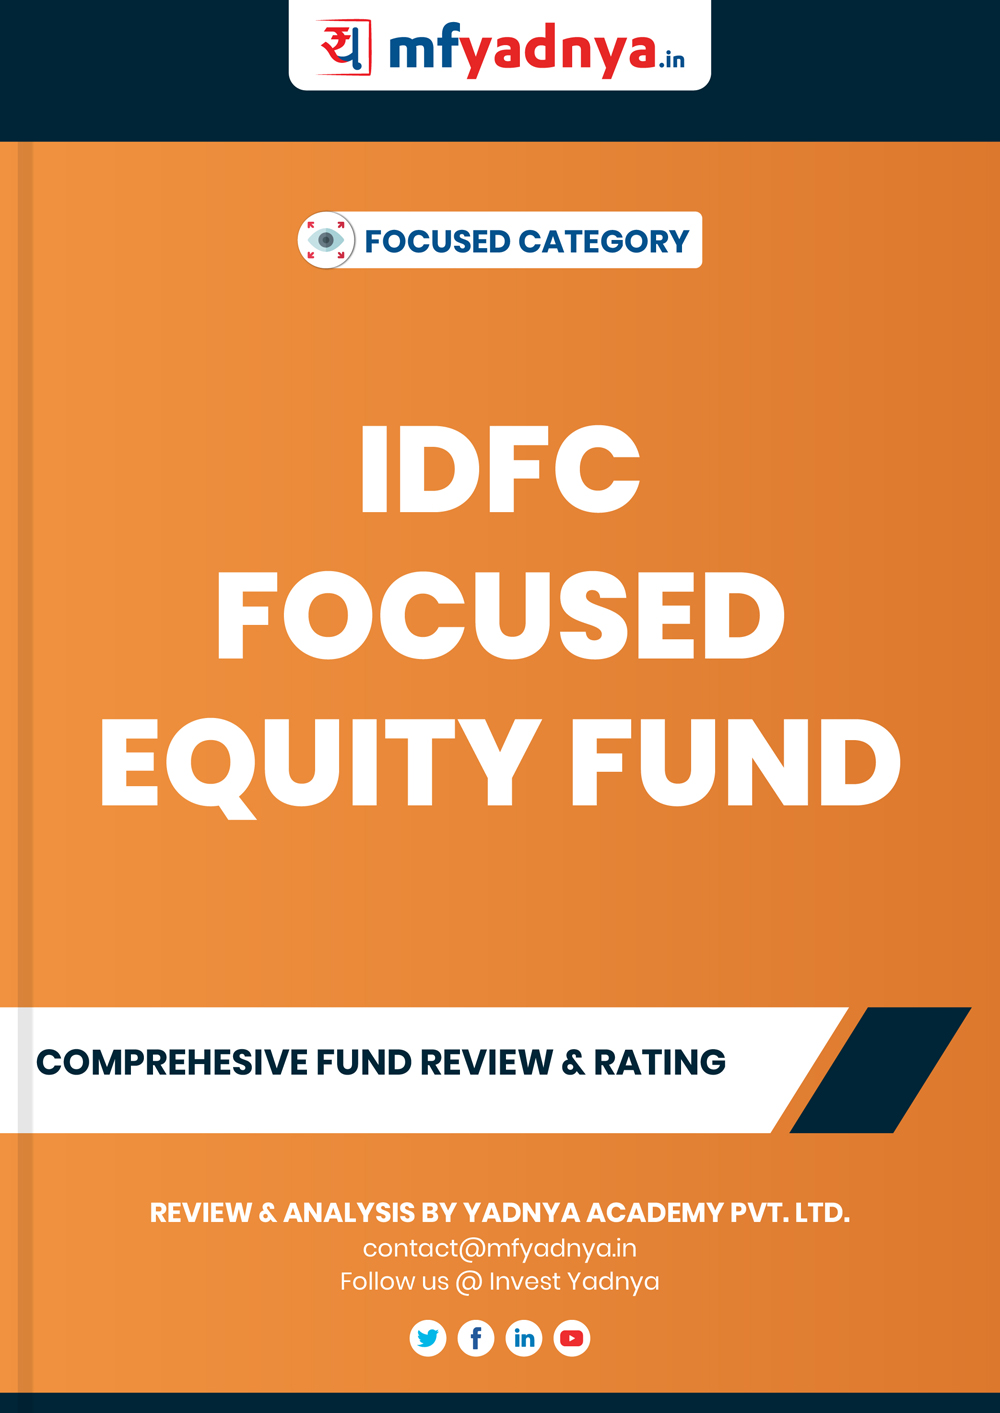 Focused Category Review - IDFC Focused Equity Fund. Most Comprehensive and detailed MF review based on Yadnya's proprietary methodology of Green, Yellow & Red Star. Detailed Analysis & Review based on Sept 30th, 2019 data.